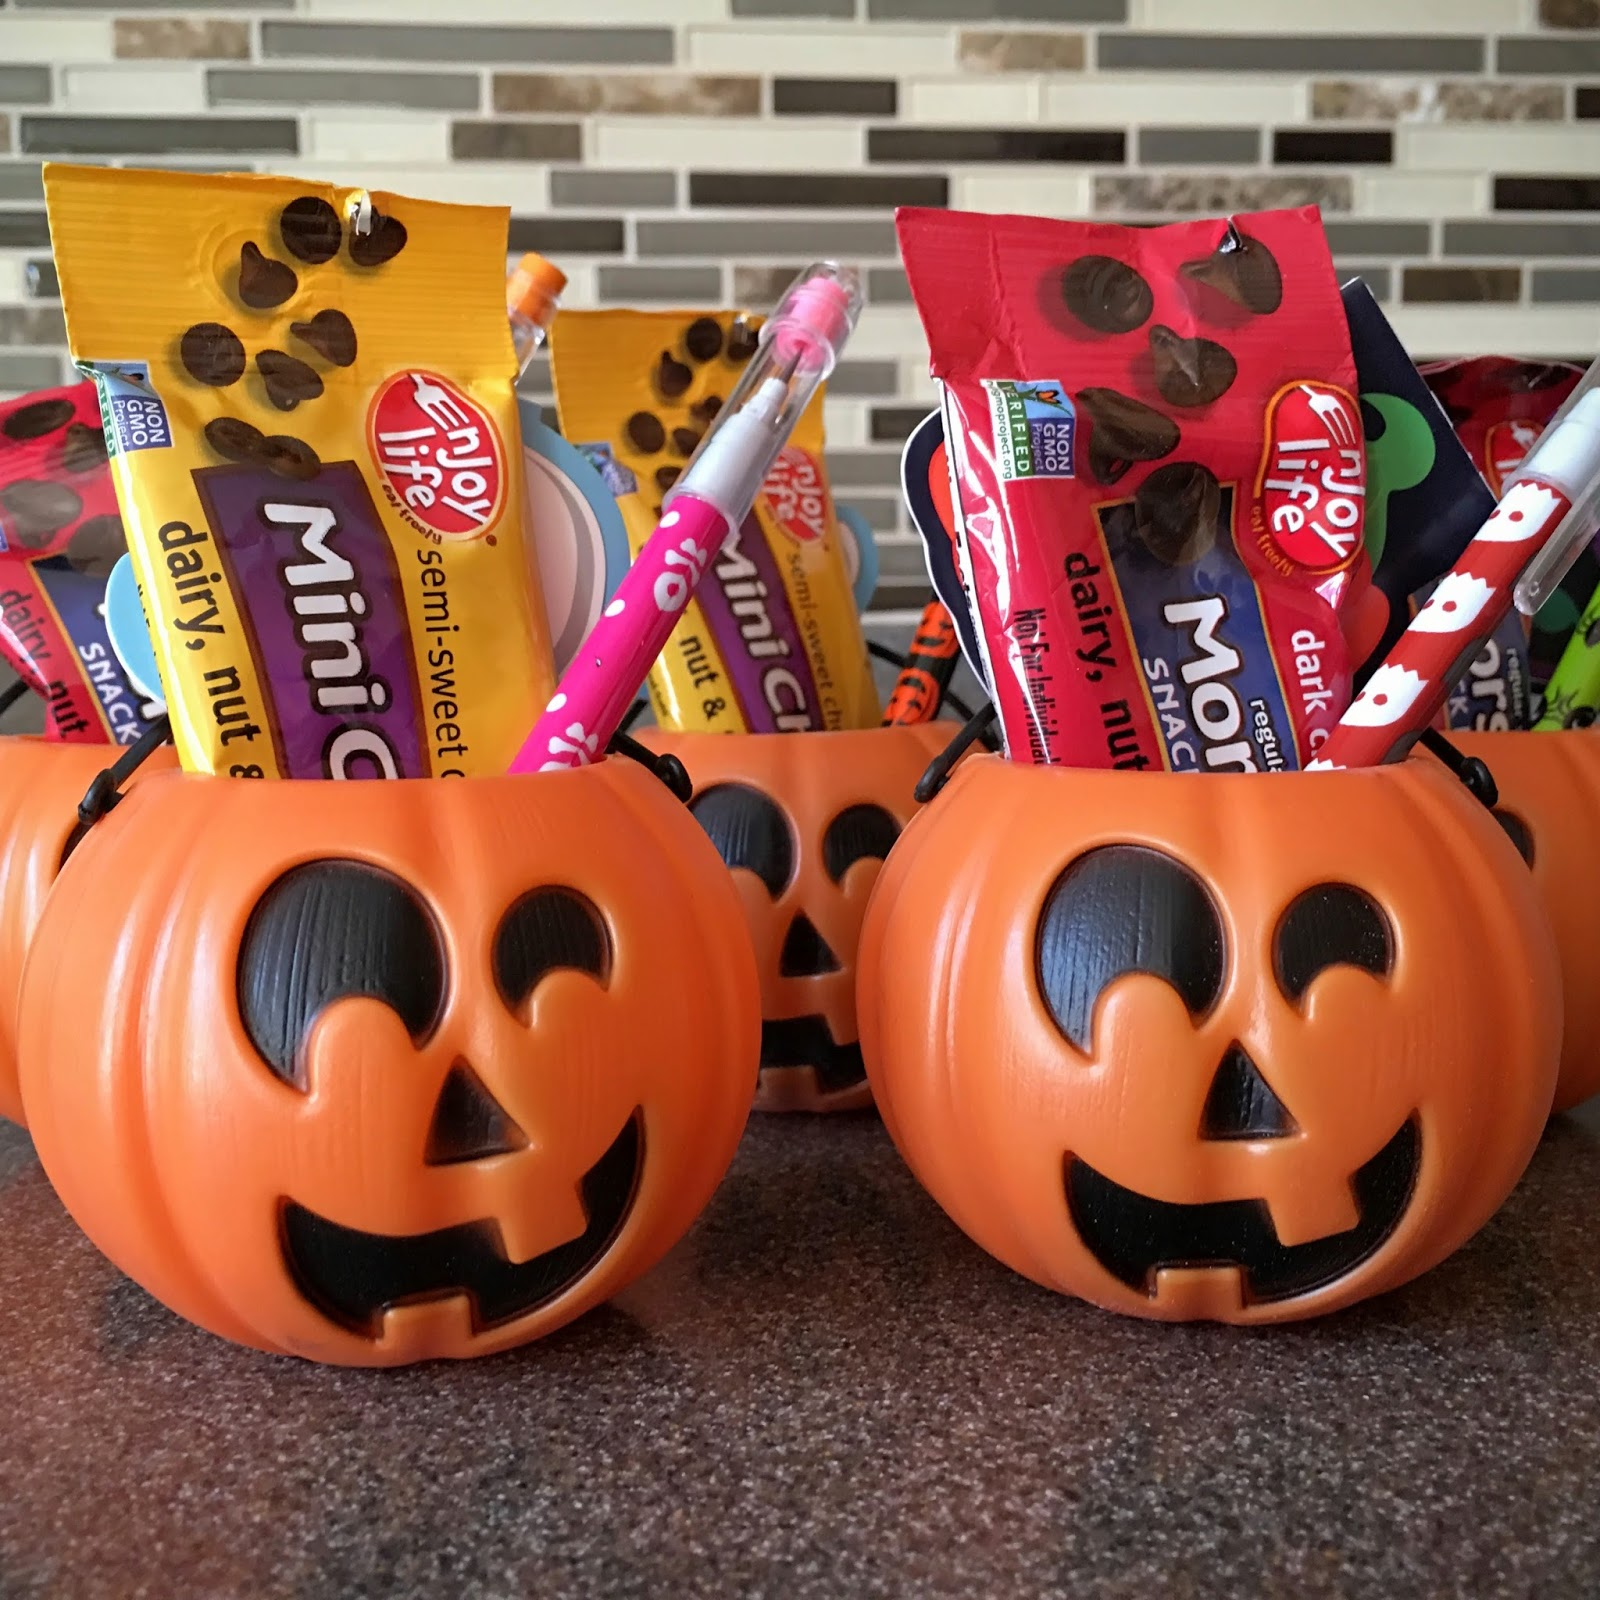 Mamacado: Enjoy Life Chocolate Chips Snack Packs ***Giveaway***